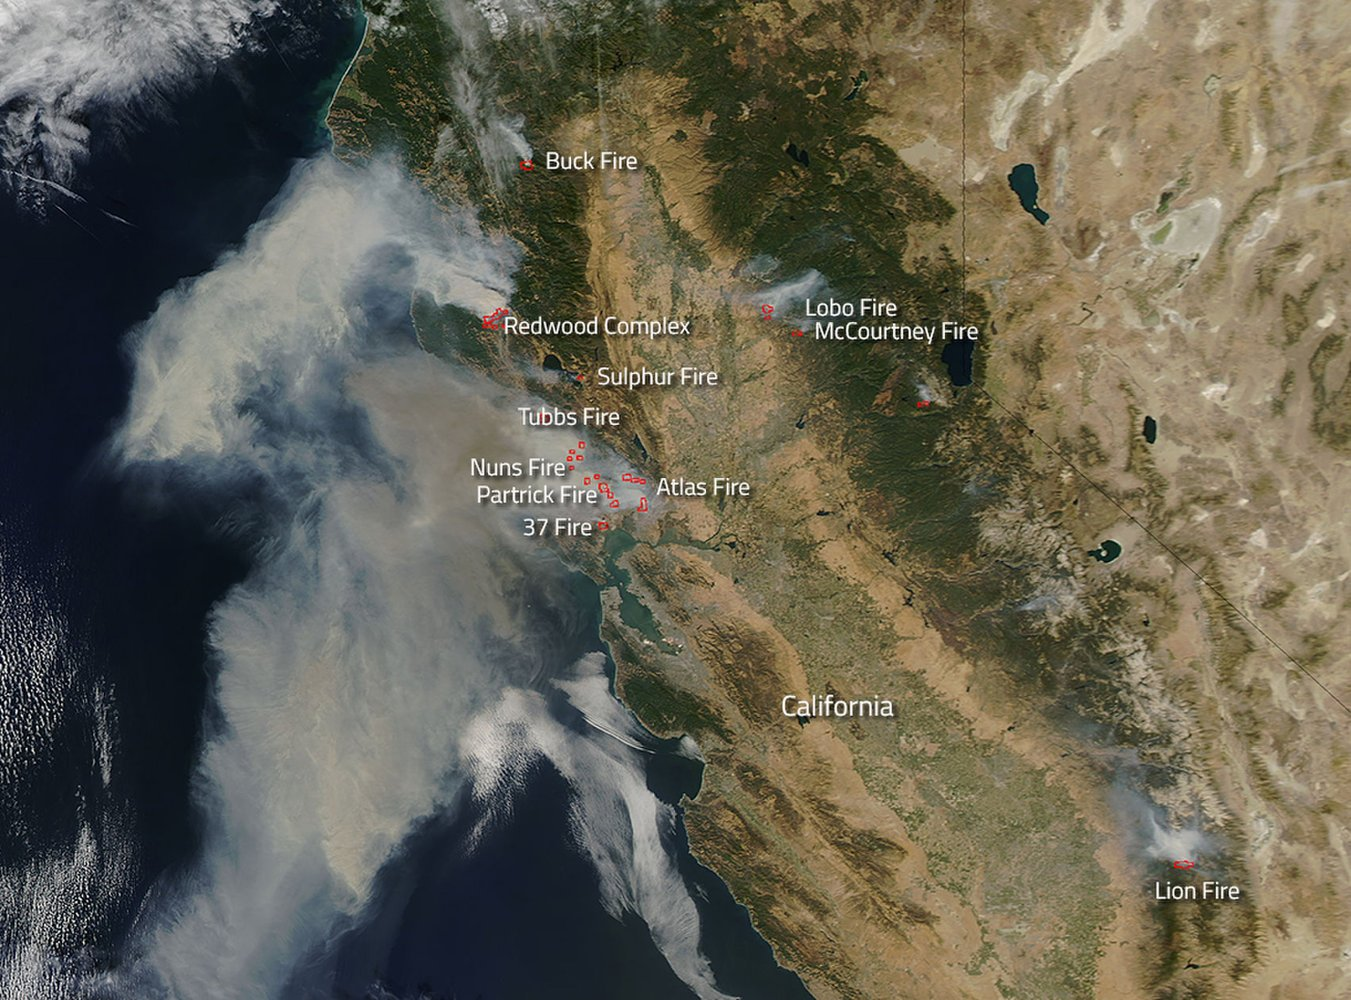 Northern California Wildfires Rage in New Photo from Space https://t.co/yvsD4UZiSC https://t.co/ZVZE3MiFjK